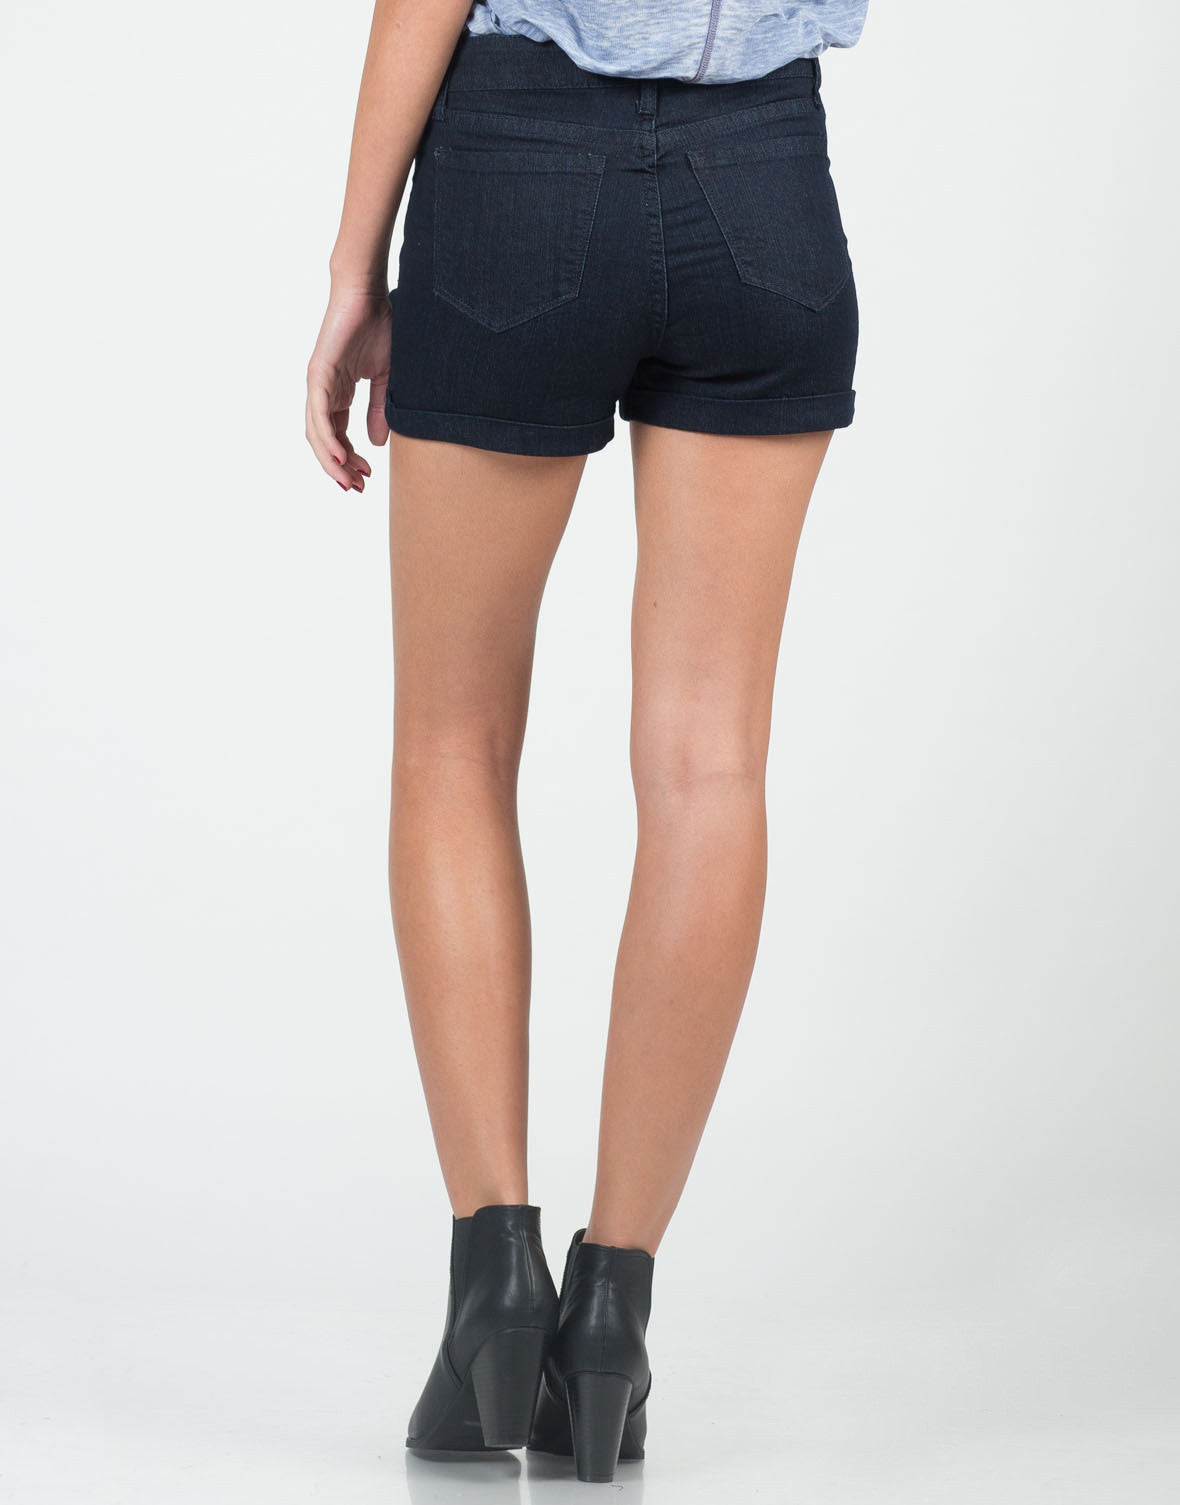 Back View of Fitted Foldover High Waisted Shorts